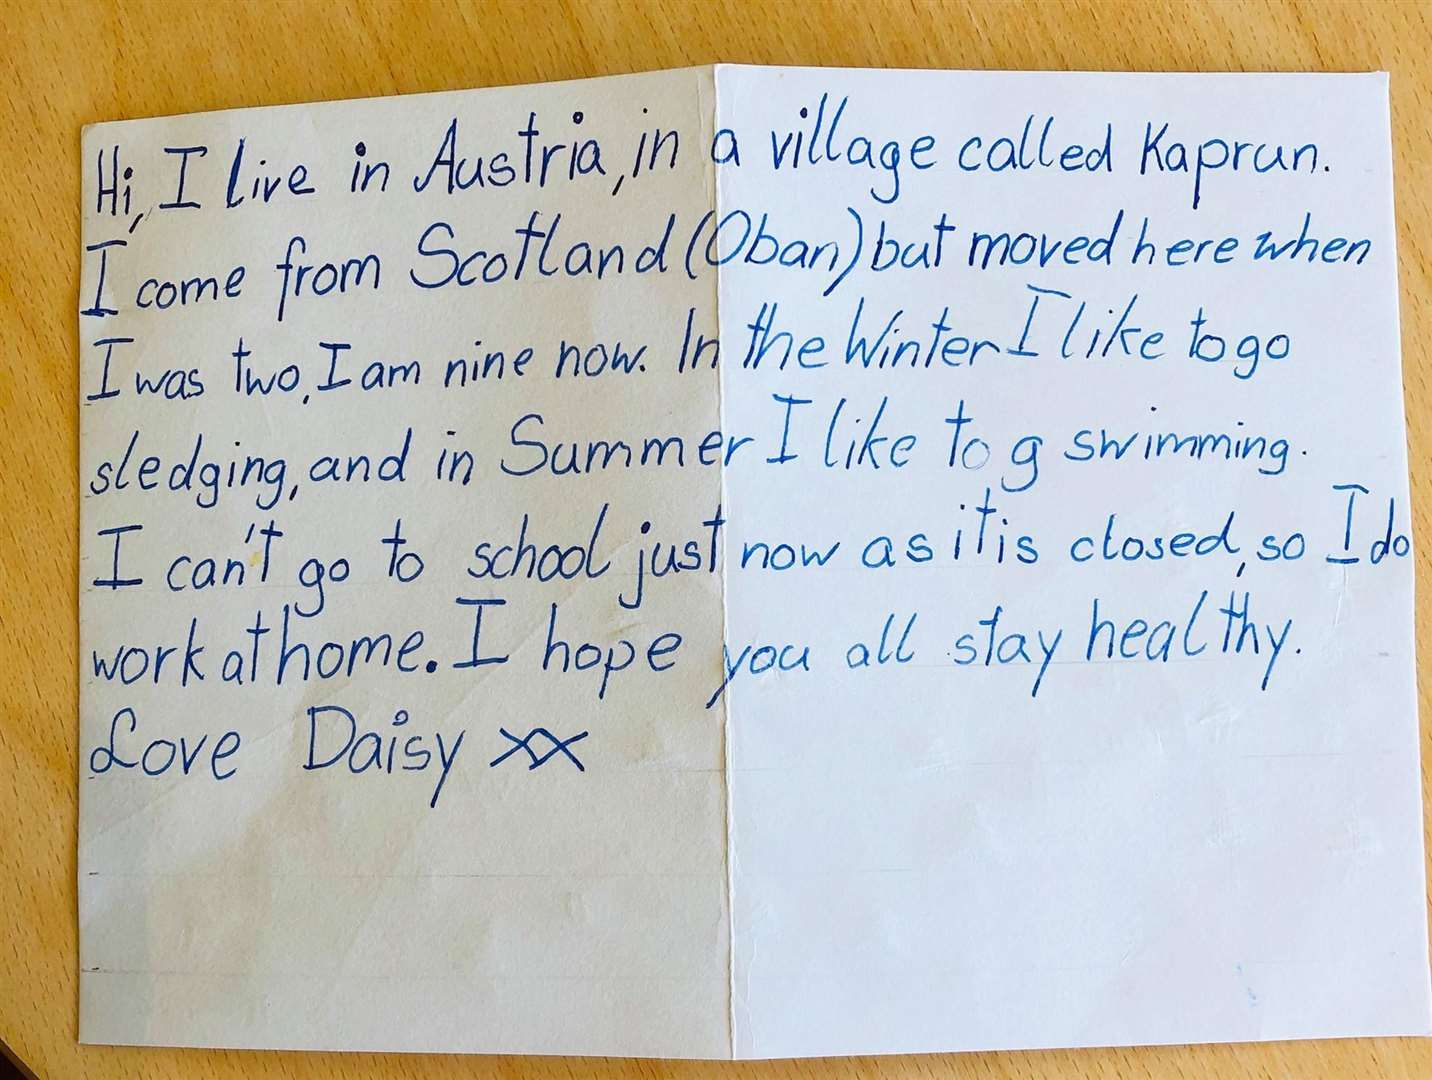 A heart-warming letter introducing a new pen pal for the residents.